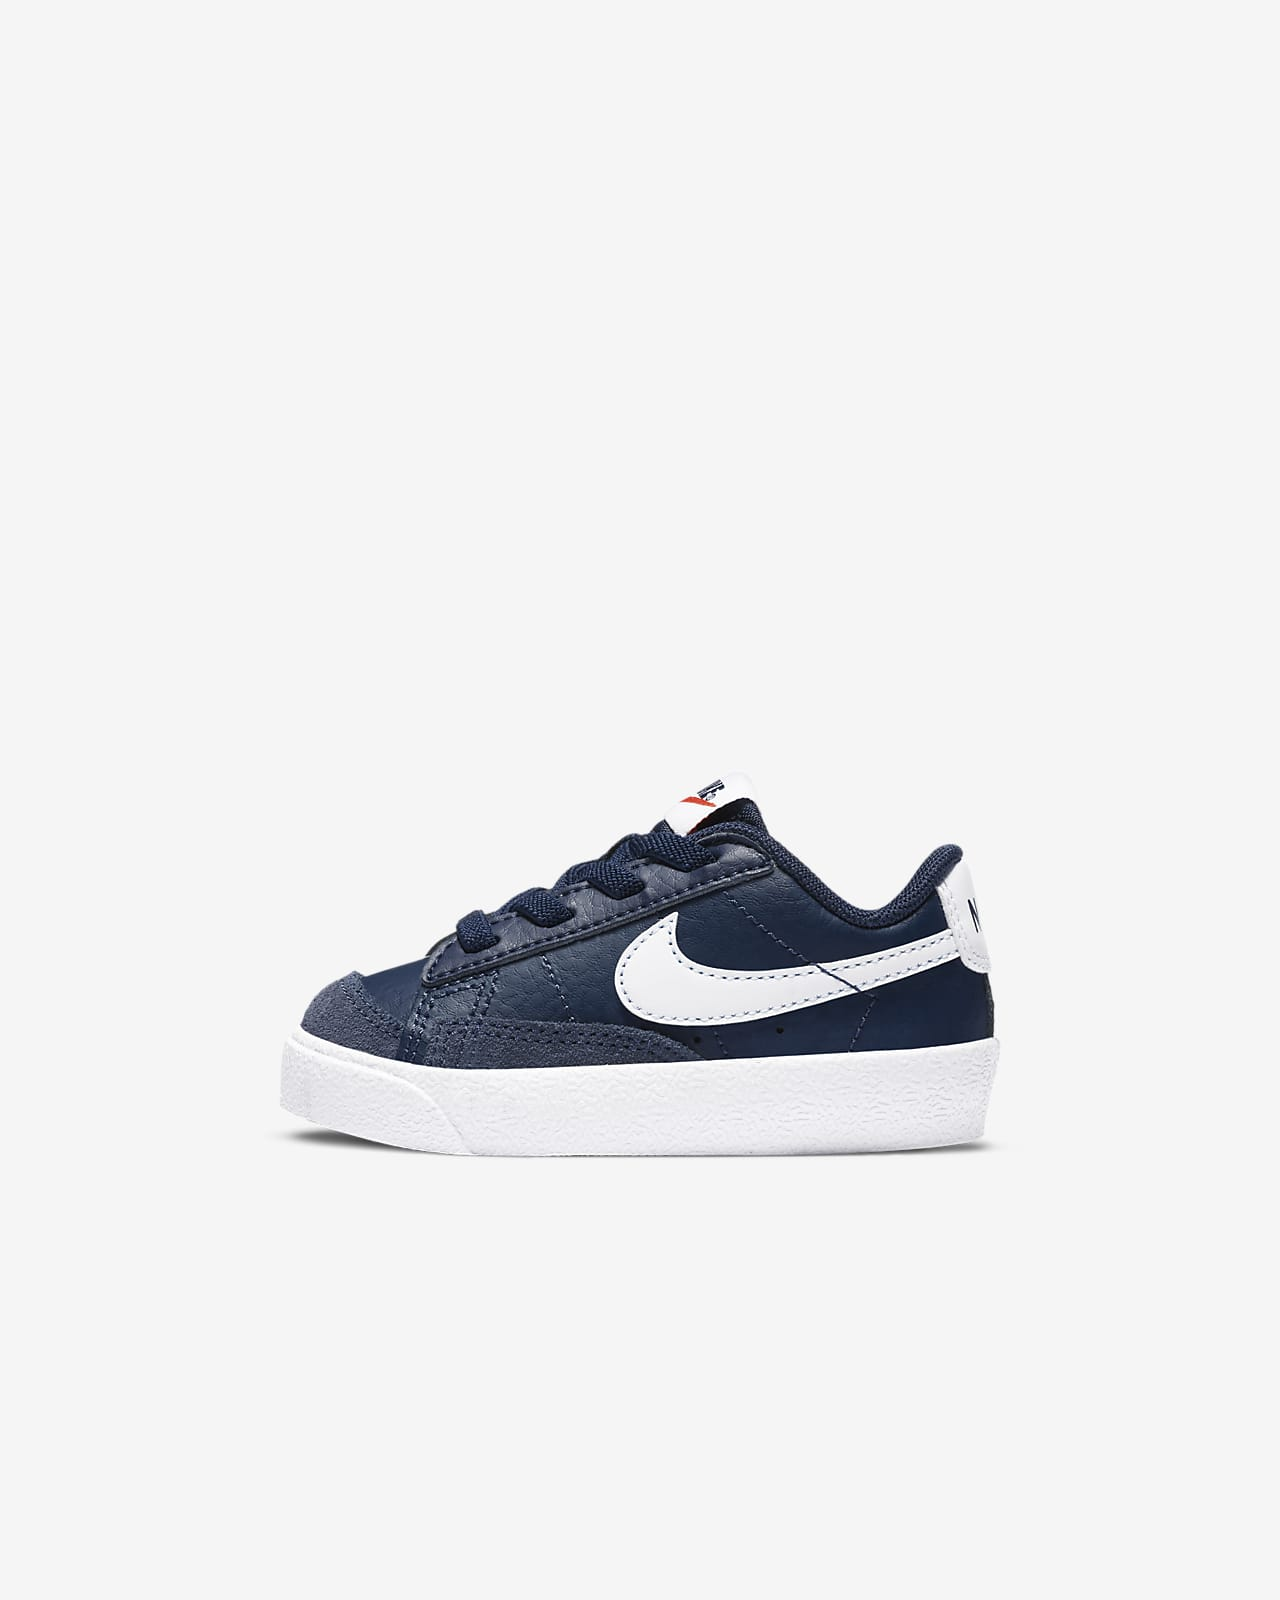 Nike Blazer Low '77 Baby/Toddler Shoe